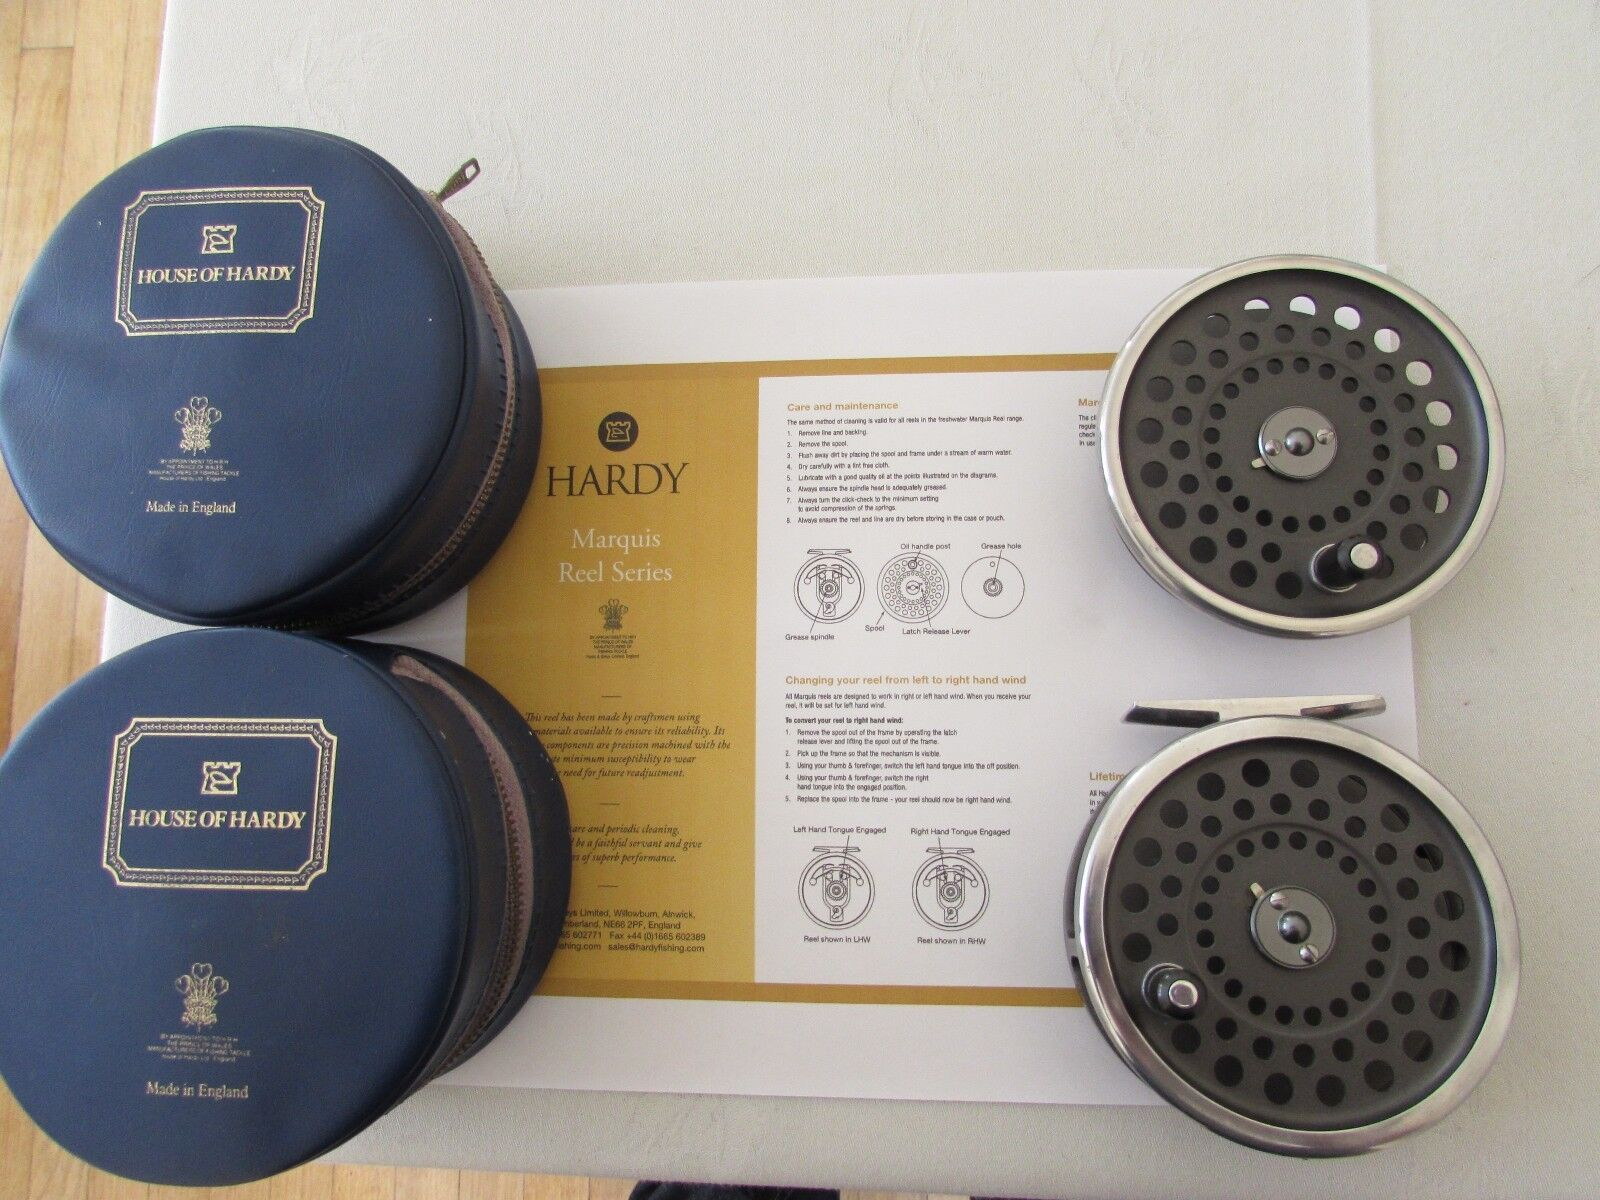 Stunning vintage Hardy Marquis 8 9 trout fly fishing reel , spool & cases etc